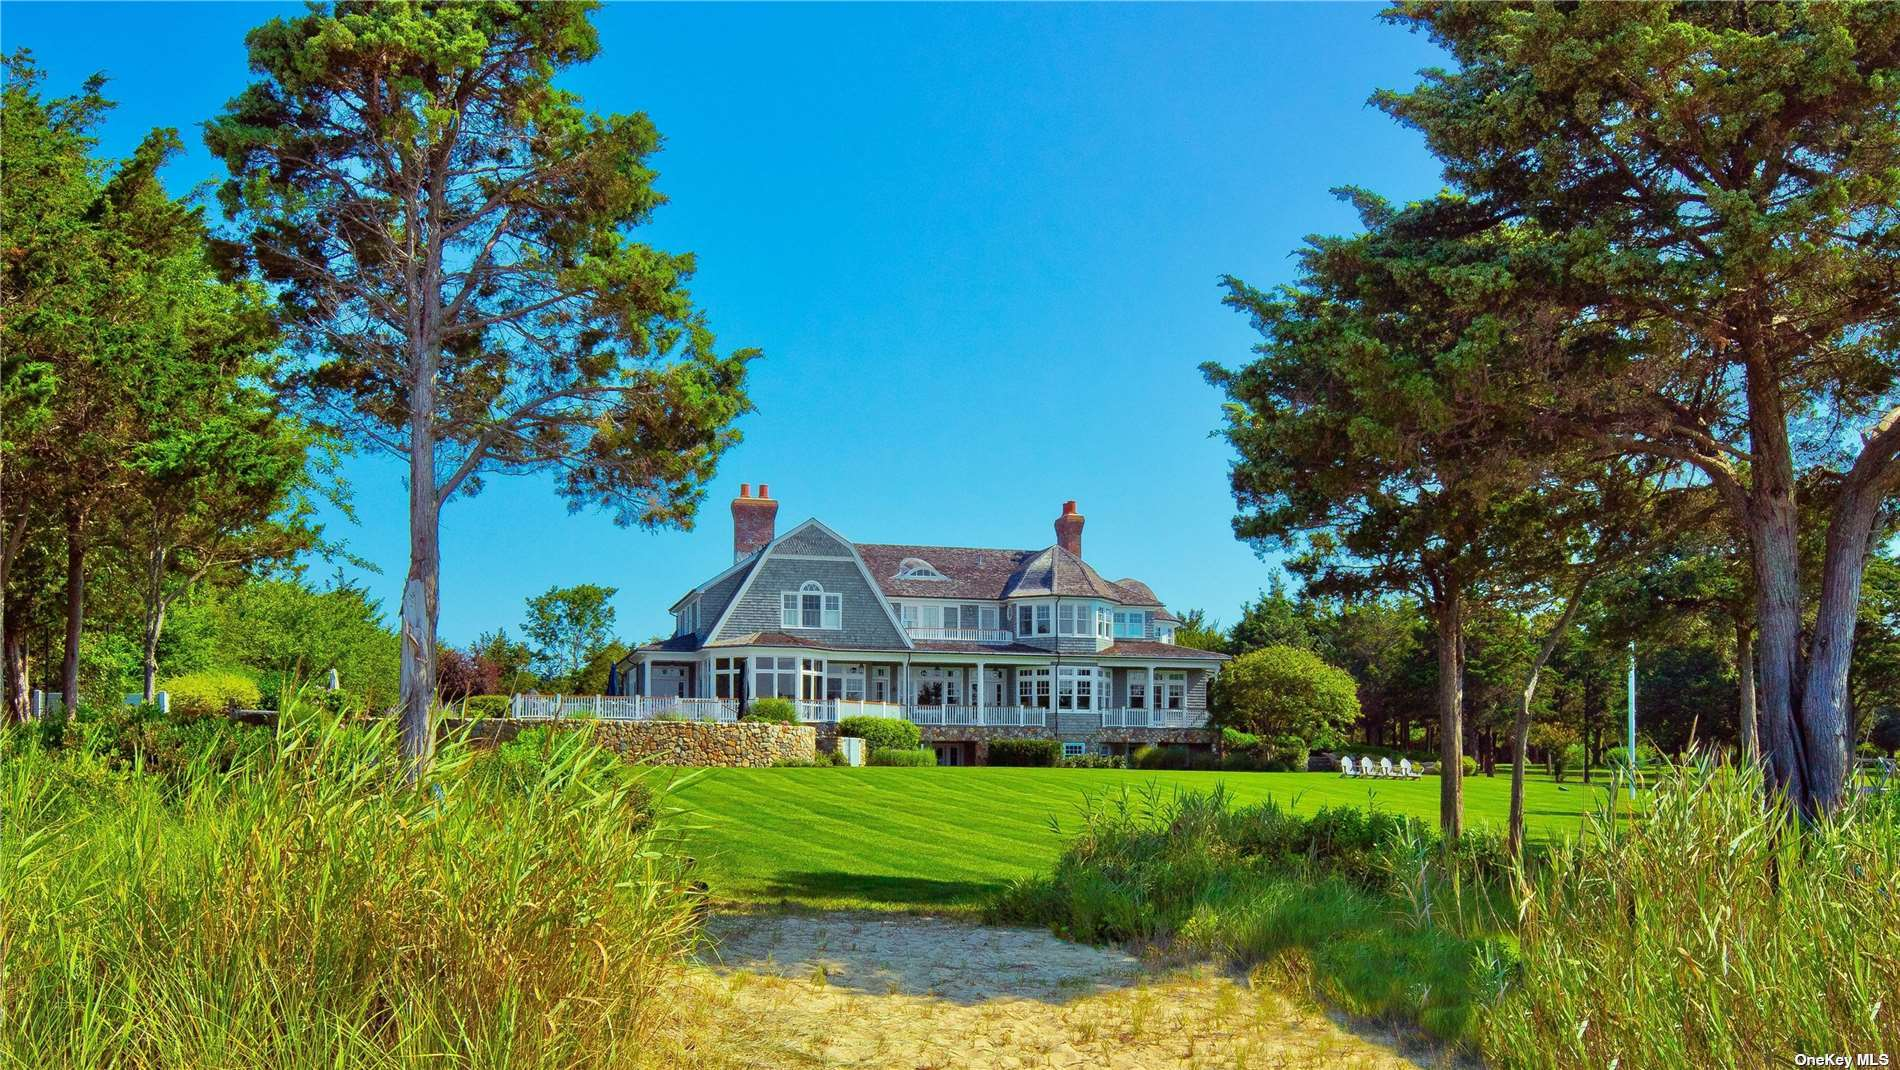 """""""The Esplanade"""", A private estate surrounded by water & preserved land with 170' of sandy beach, fronting Peconic Bay. Nantucket style 7000sf home, crafted with crown moldings, NF Stone, cedar shake, and marble. Cooks are delighted by the two tone Clive Christian Kitchen outfitted with La Cornue Gas Stove, Sub Zero & Miele appliances. The kitchen blends into the dining/living room enclosed by glass overlooking sprawling lawn and sea. A well designed interior encompasses a Mahogany Library, Sunroom, 2 office, 4 fireplaces, a back staircase, coffered ceilings, and window seats, add warmth & timeless elegance. A generous Master plus 4 ensuite bedrooms are classically designed and finished with waterworks faucets and LeFroy-Brooks shower systems. The Home, outdoor kitchen, heated salt water pool, and Jacuzzi, are sited at the perfect elevation to capture views of the sandy beach and Peconic Bay."""